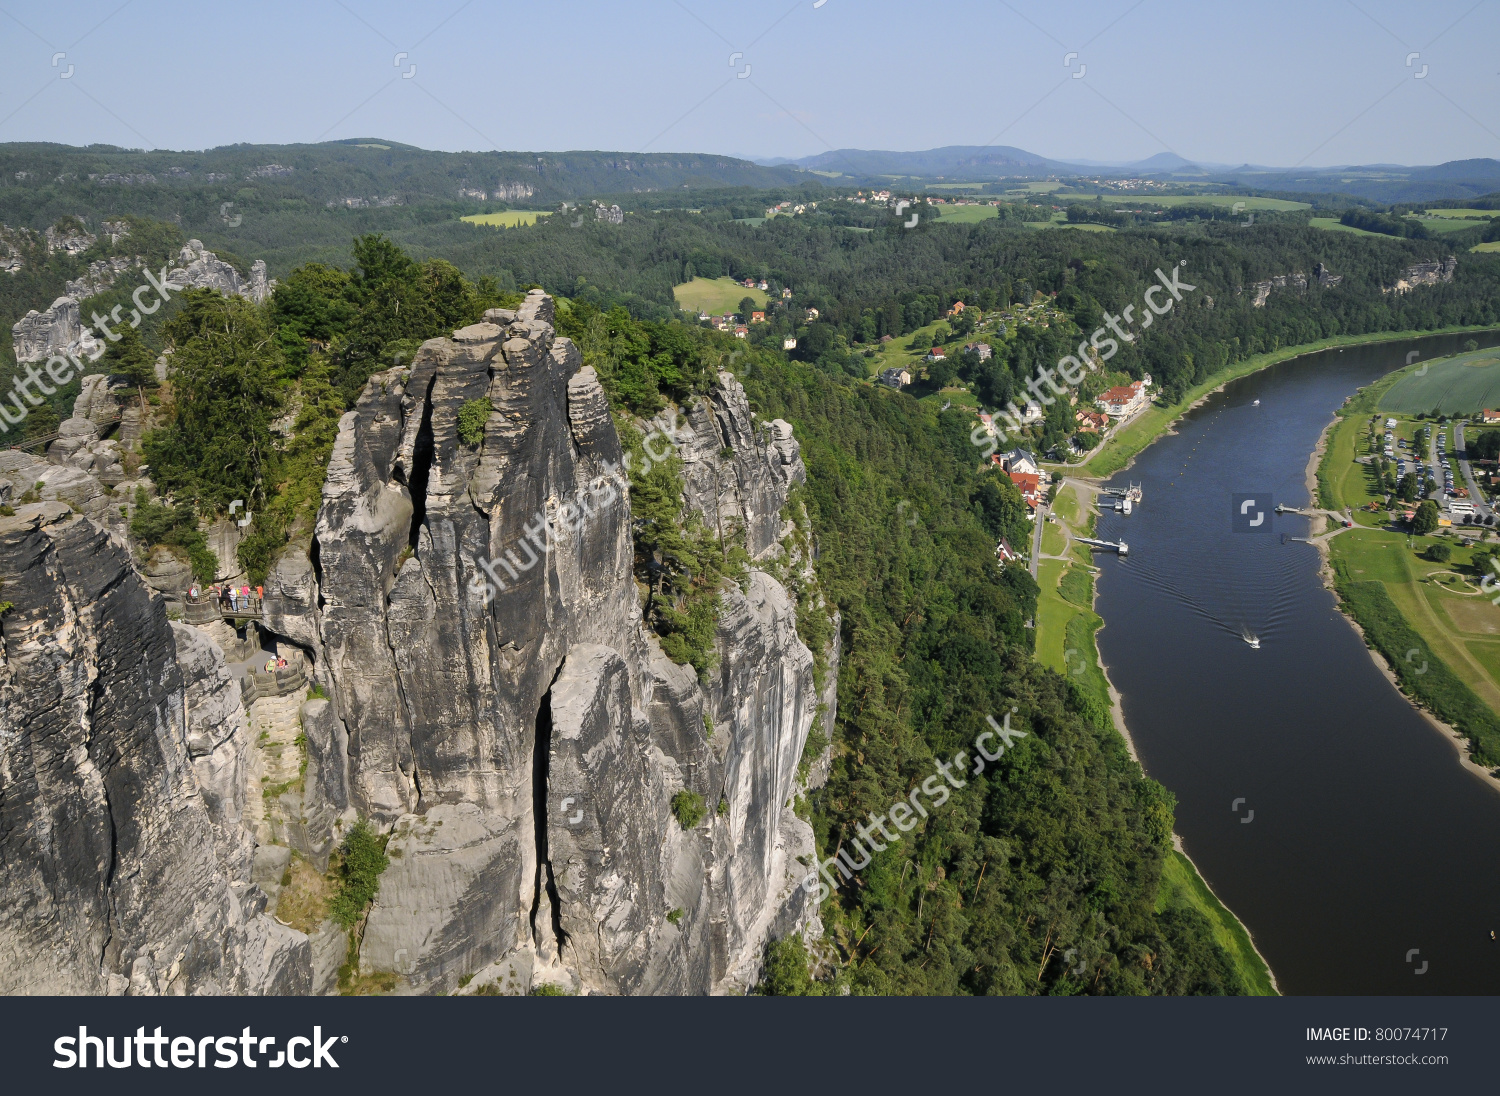 Elbe Sandstone Mountains clipart #2, Download drawings